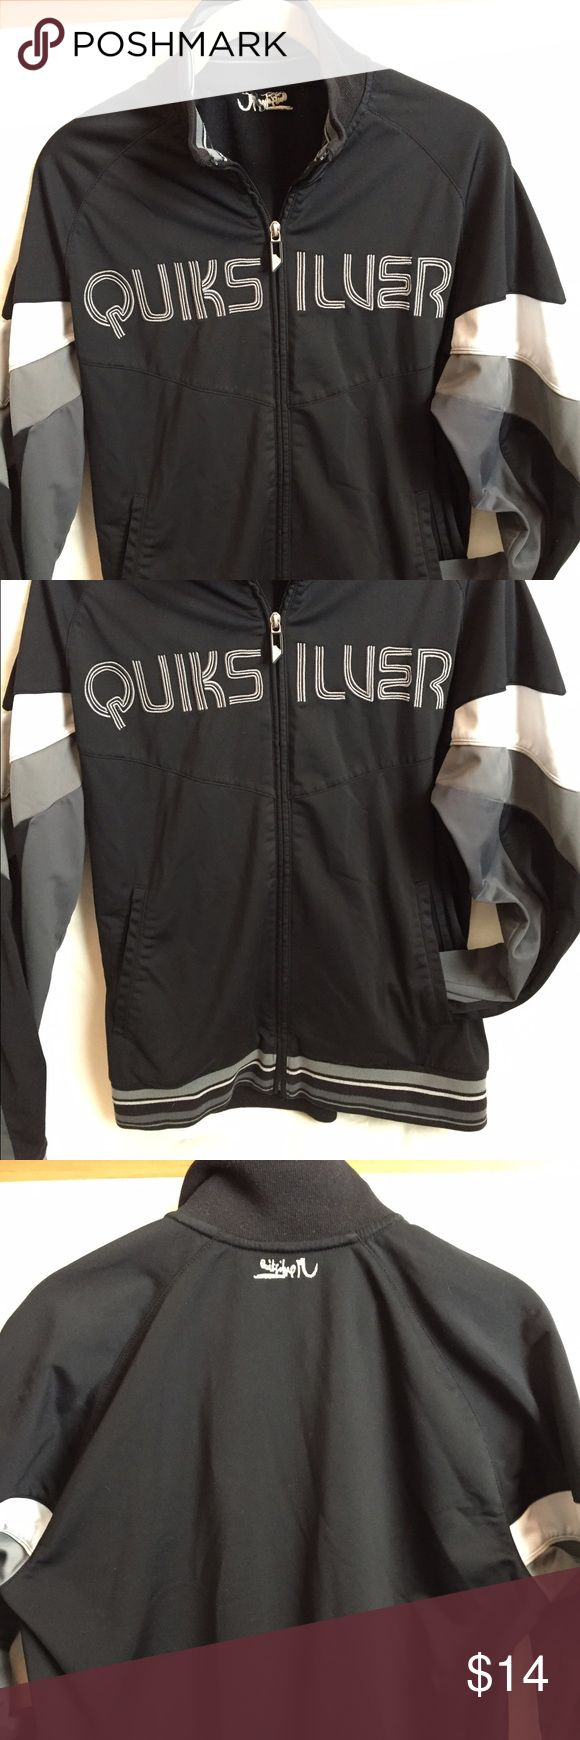 Quicksilver Track Jacket This is a men's small or women's medium. Great jacket to throw in when going to the gym💪🏻 Quicksilver Jackets & Coats Performance Jackets